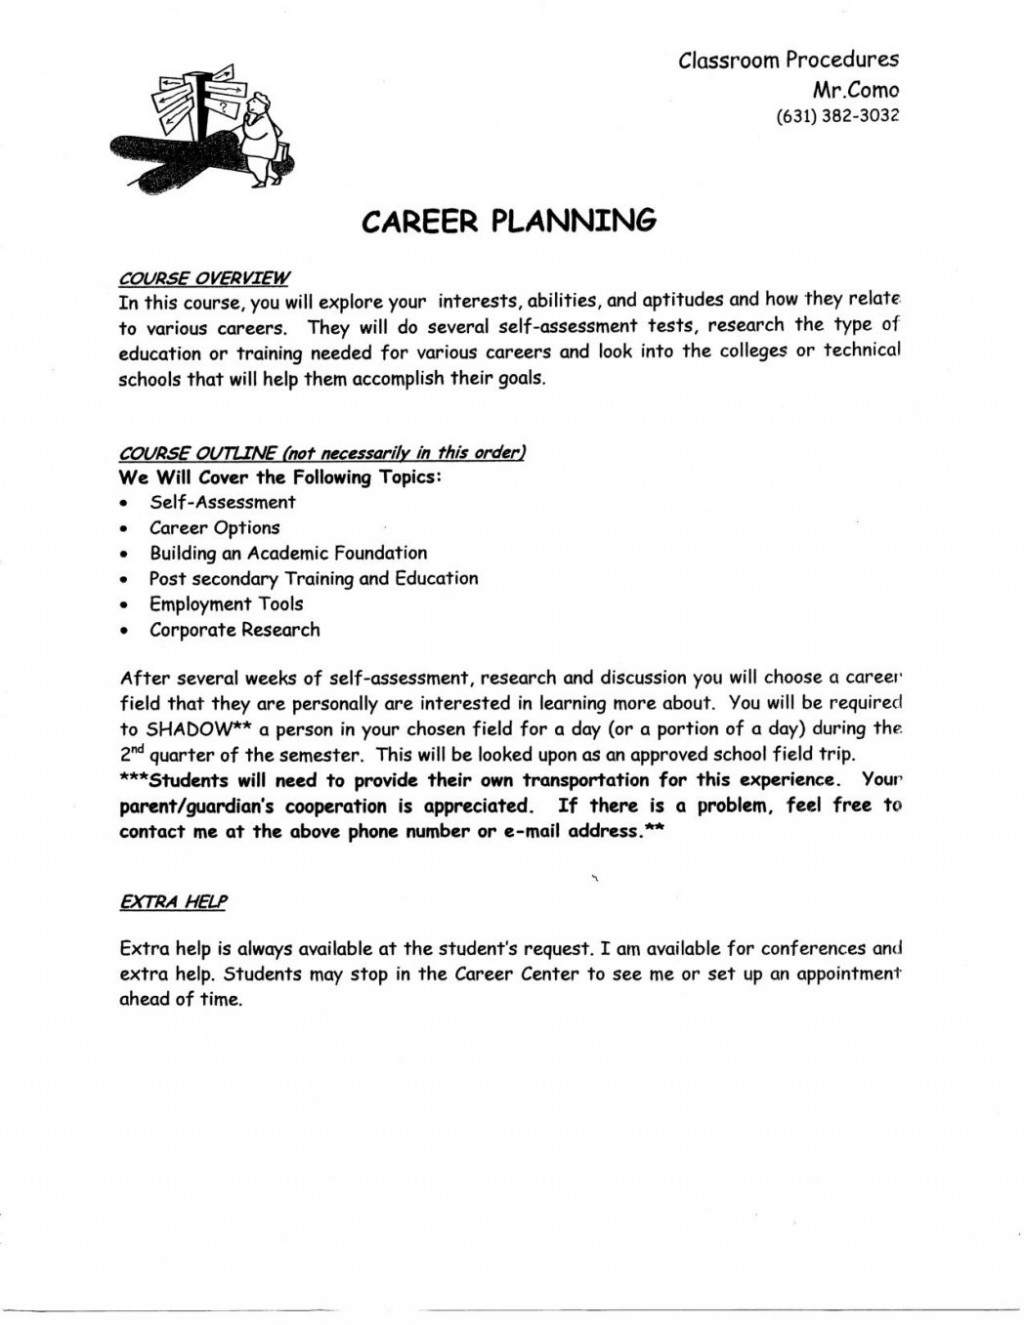 006 Future Plan Essay Plans Career After Graduation College Application Outline Format Planni Template Admission Layout Pdf 1048x1357 Impressive For Scholarship Sample Ielts Conclusion Large